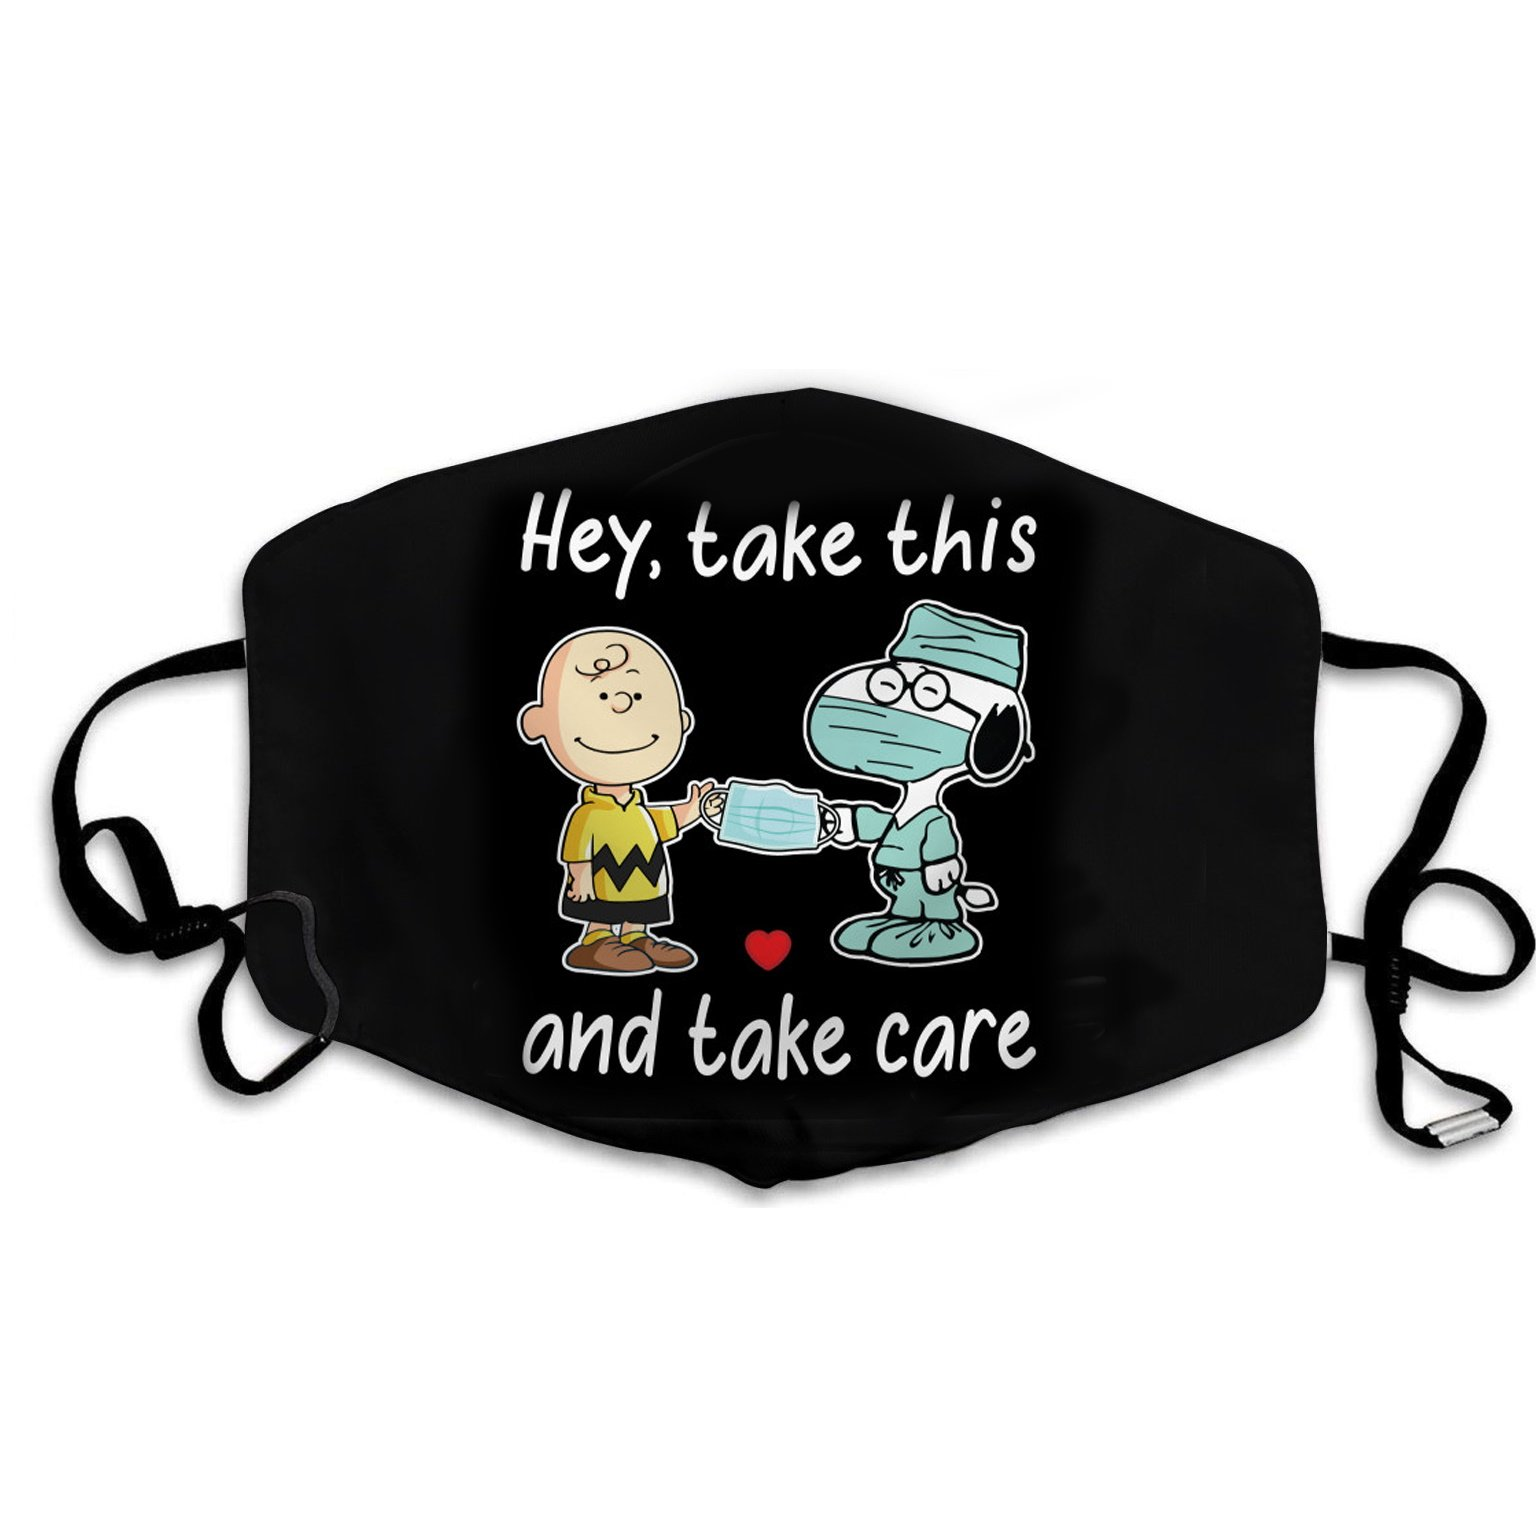 Charlie and snoopy hey take this and take care face mask 4